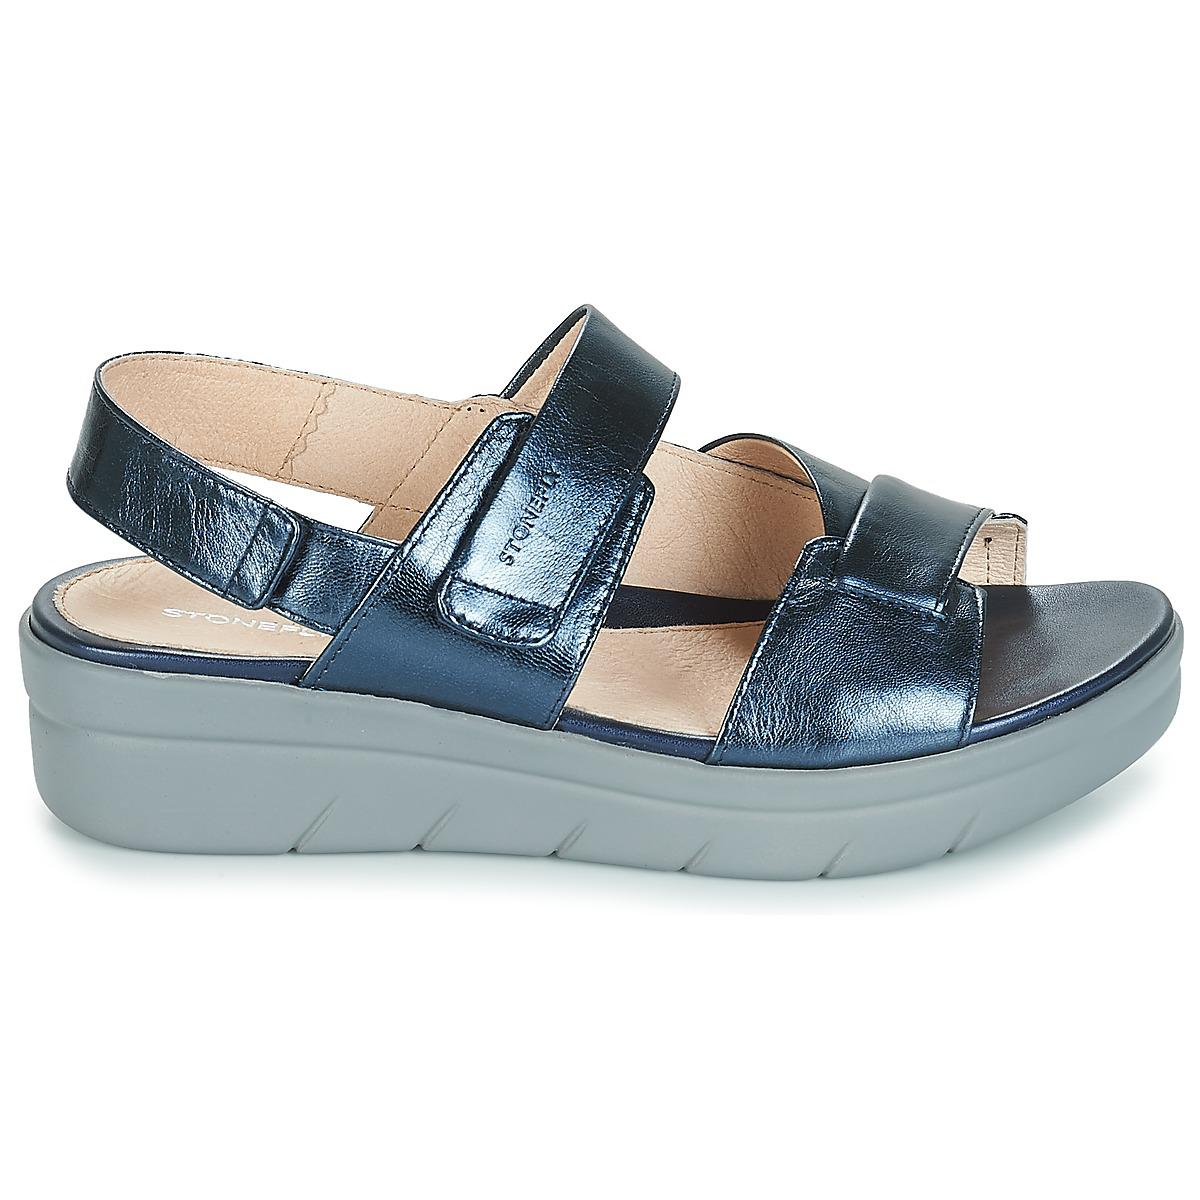 in 1 Multicolour Aqua Stonefly Blue Women's Laminated In Sandals Iii 8Swwq6A